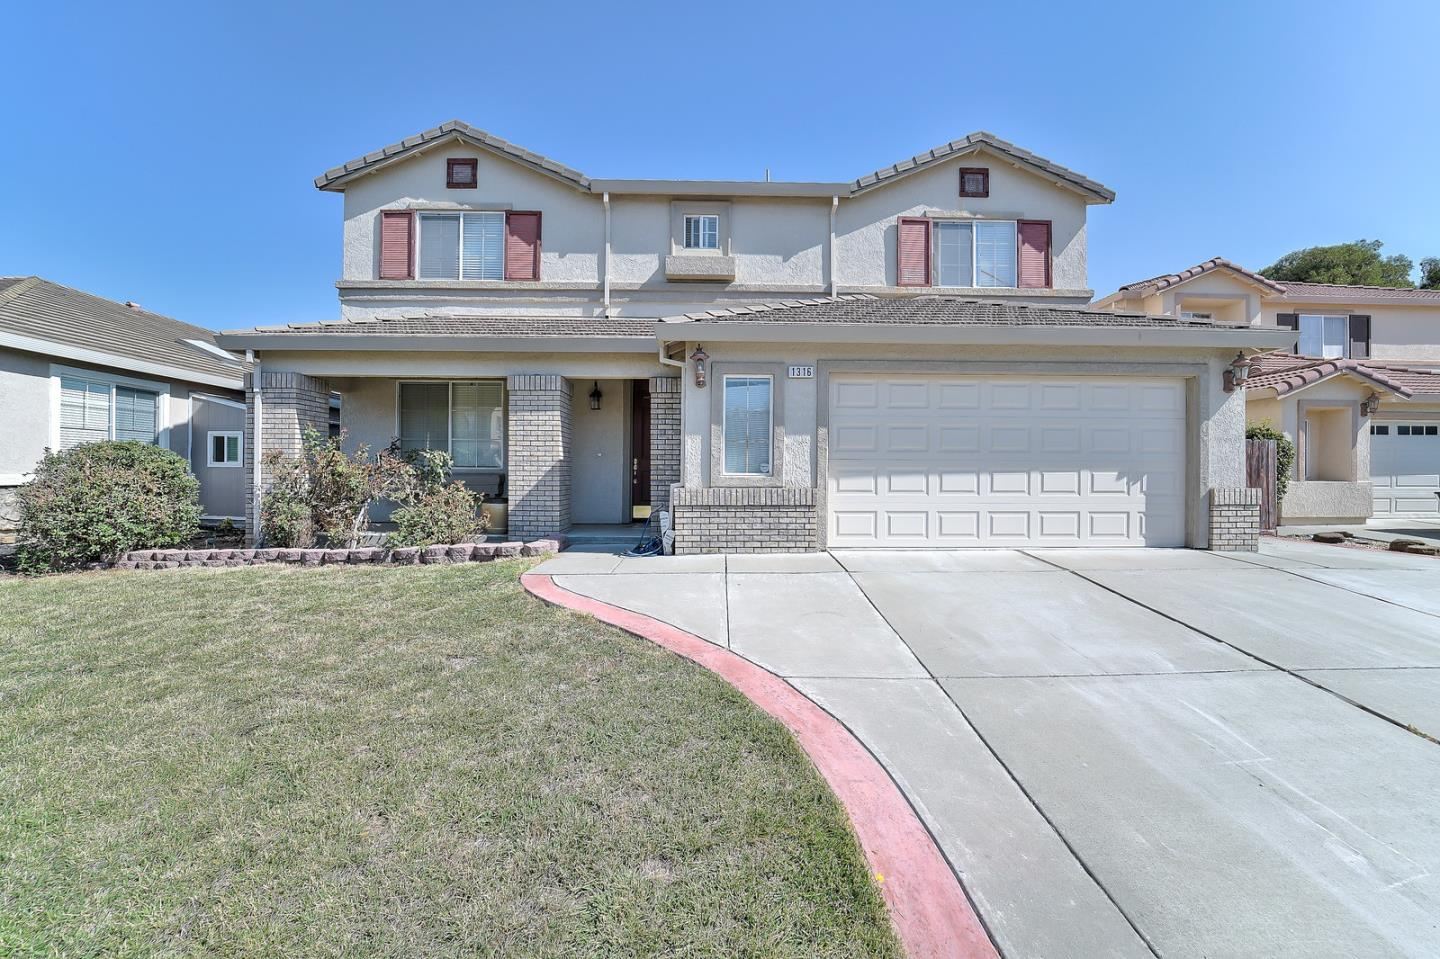 واحد منزل الأسرة للـ Sale في 1316 Reeves Court Suisun City, California 94585 United States